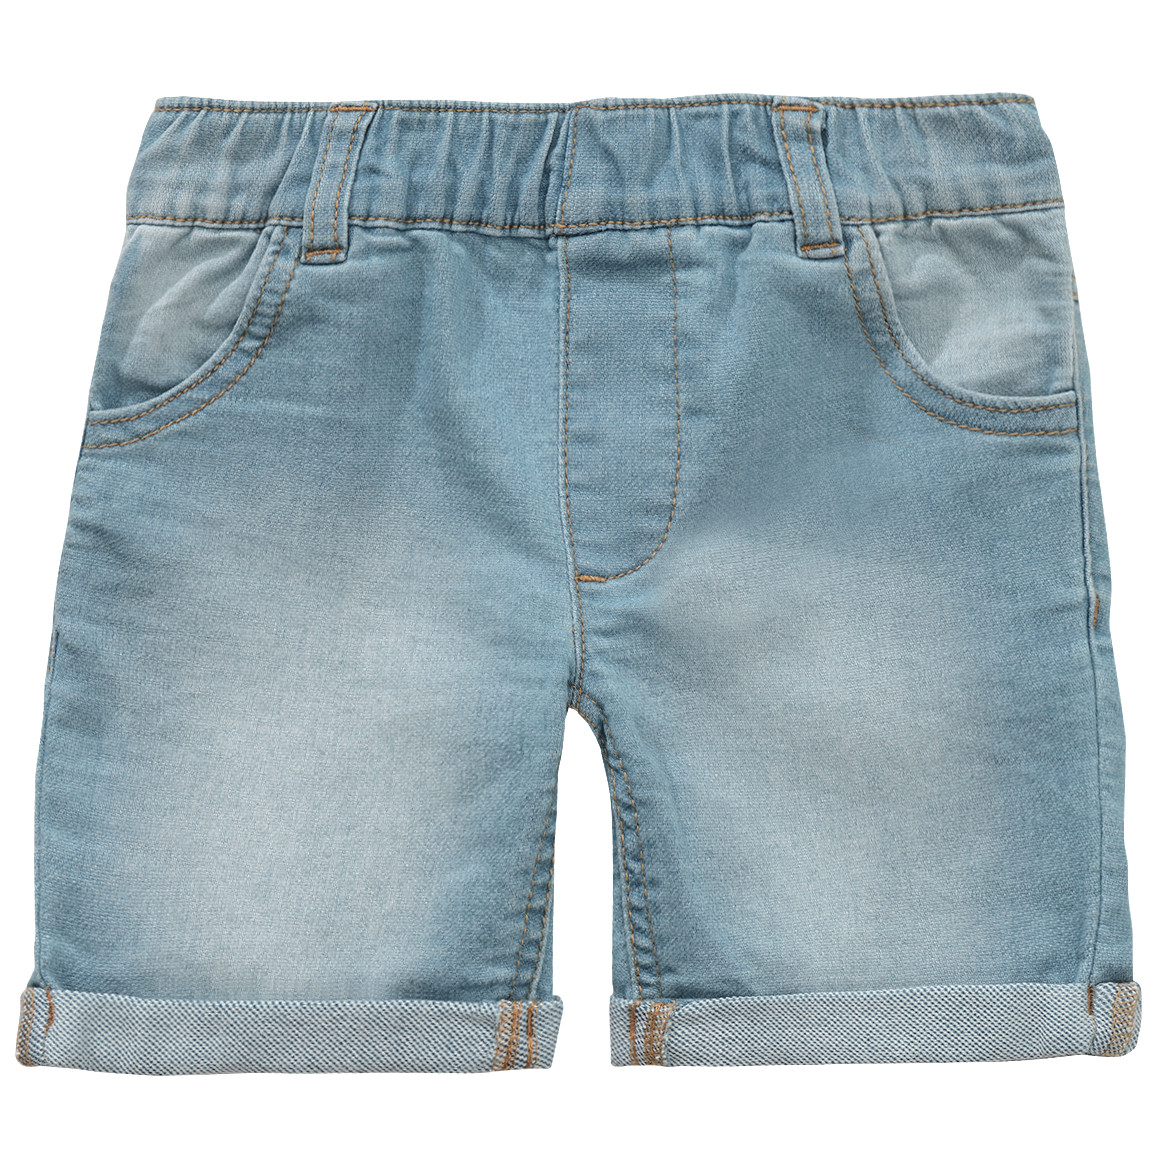 Jungen Pull on Jeansshorts in heller Waschung